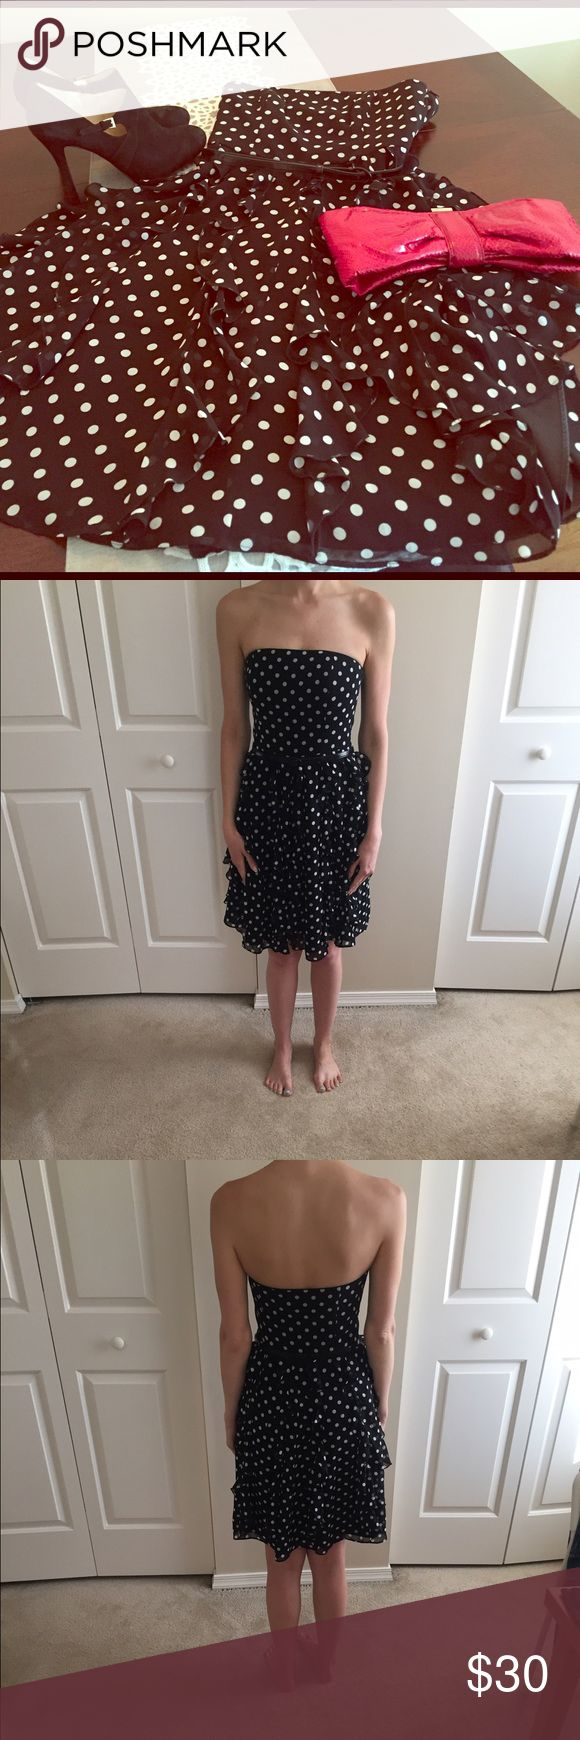 Black House White Market size 0 occasion dress This is a strapless size 0 dress with black & white polka dots! Fun ruffle bottom makes this dress incredible for dancing! Would be perfect for any occasion to include weddings, showers, parties & more! White House Black Market Dresses Midi